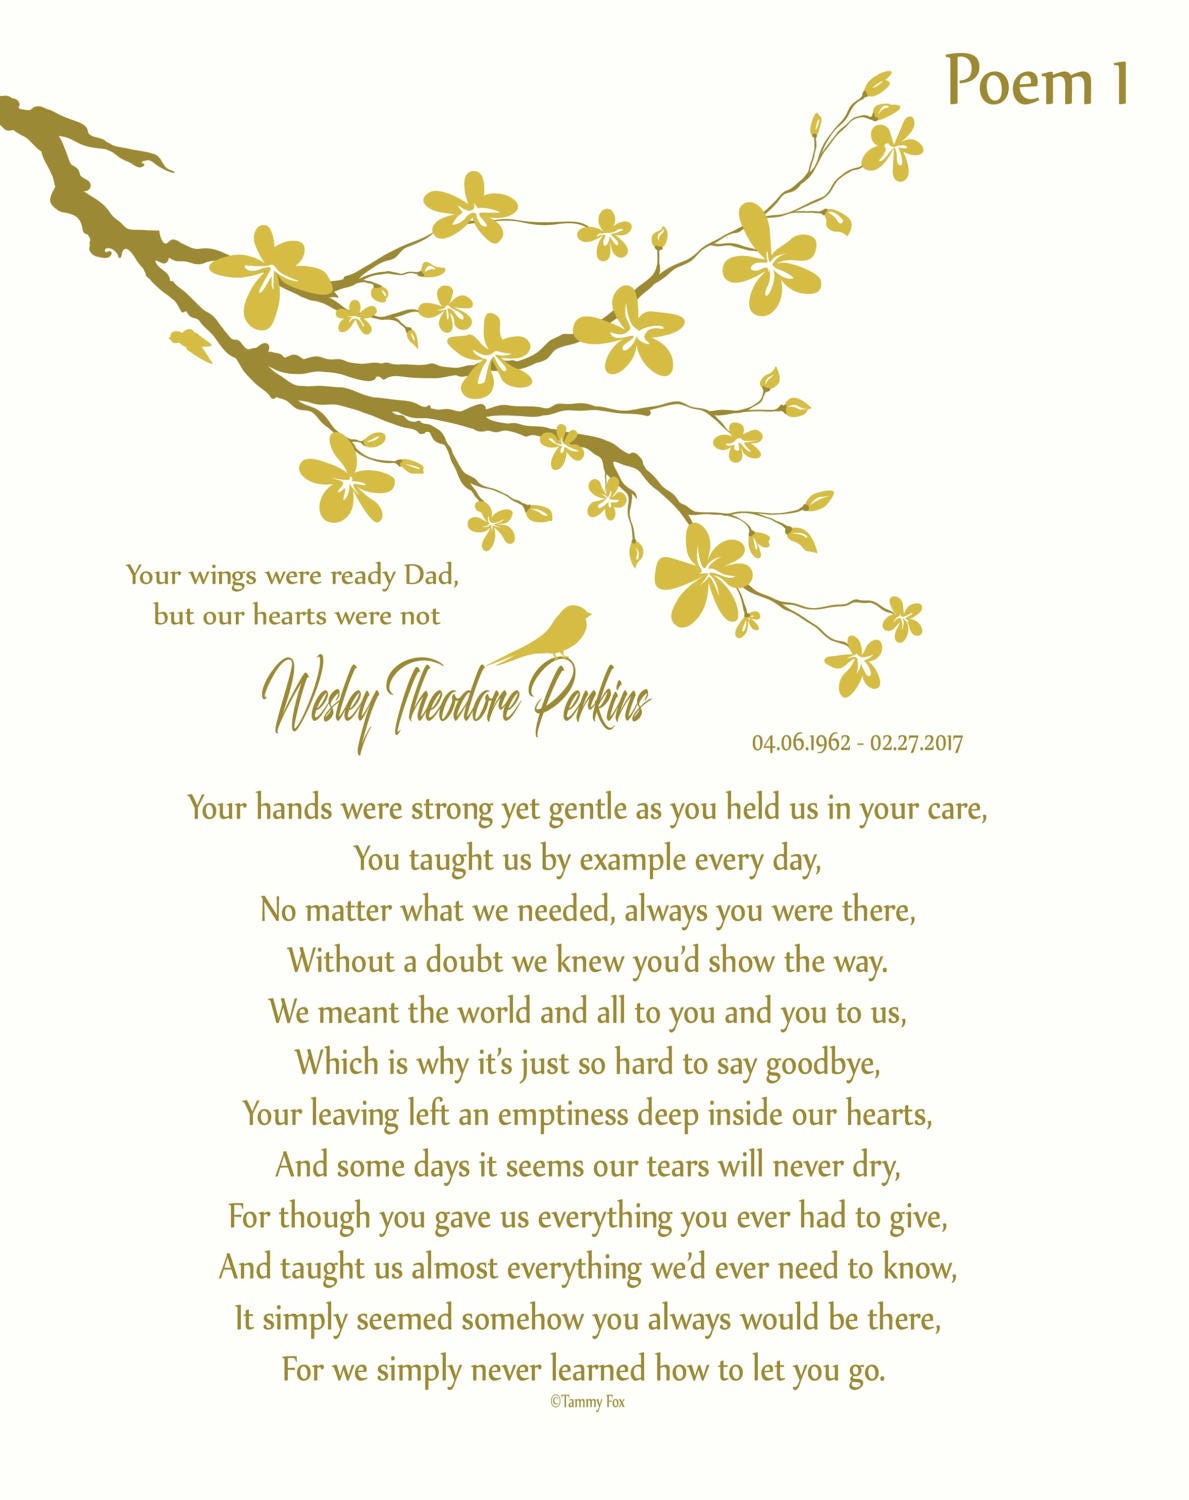 In Memory Of Father Loss Of Dad Dad Memorial Poem Dad In Heaven Personalized Memorial Print Sympathy Gift Remembrance Print Choice Of Poem